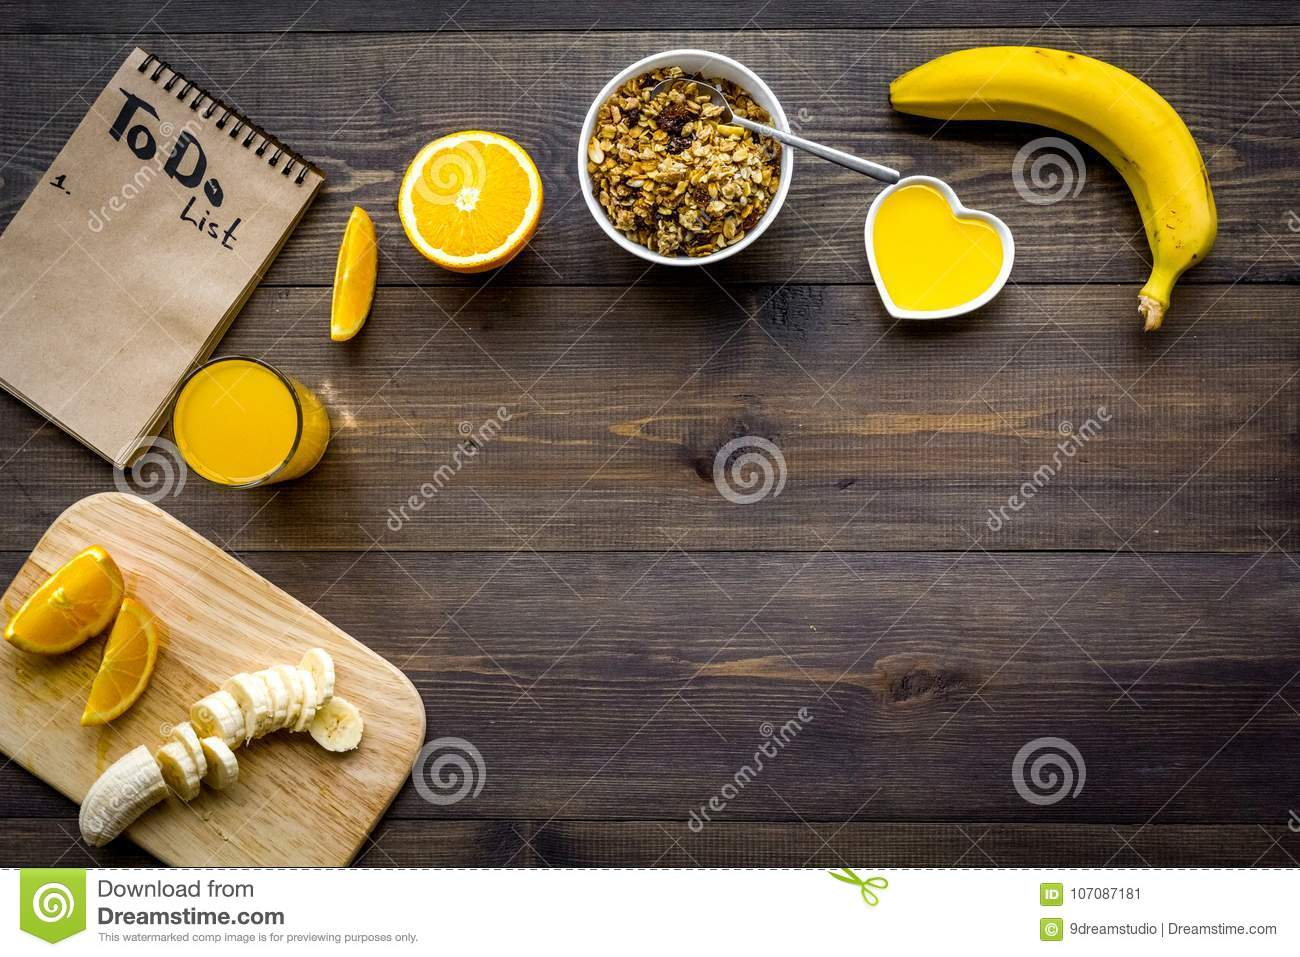 Good Morning Habits Eat Porridge And Fruits And Make To Do List